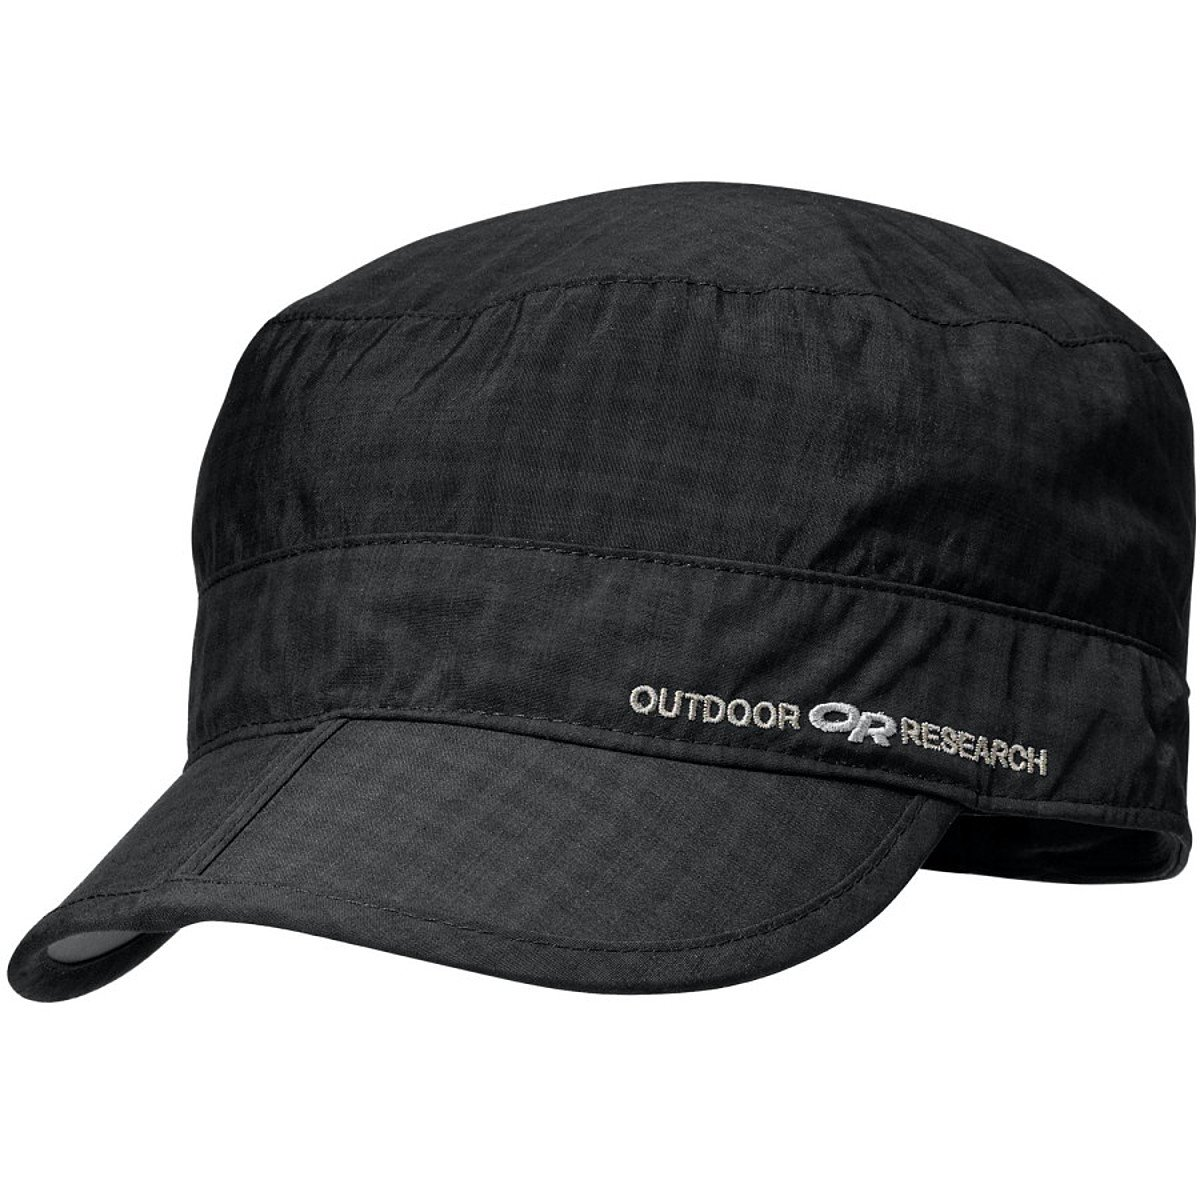 Outdoor Research Radar Pocket Cap, Black Check, X-Large